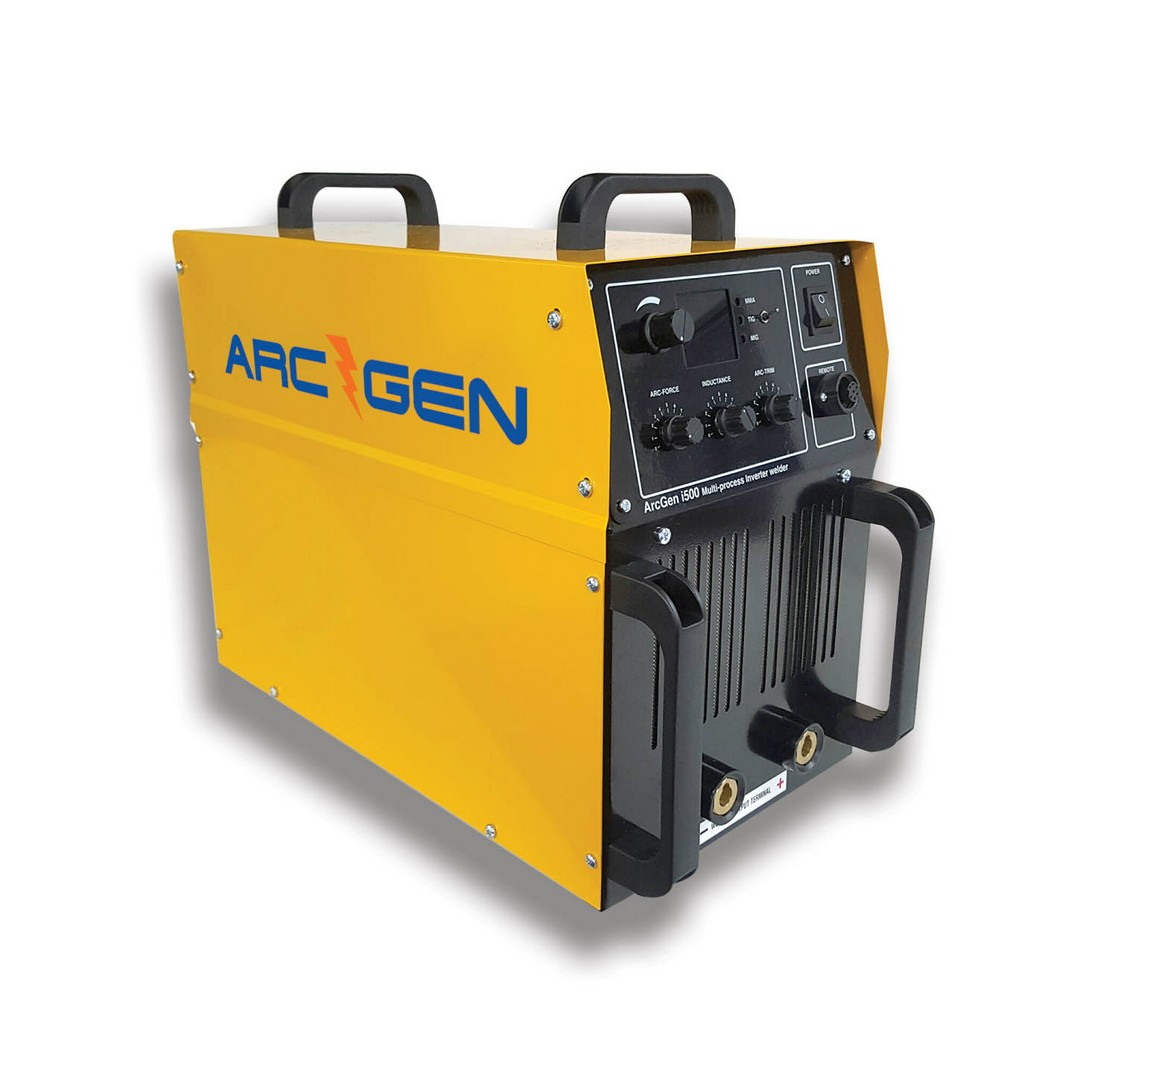 ArcGen Cobra 500i Inverter Welder